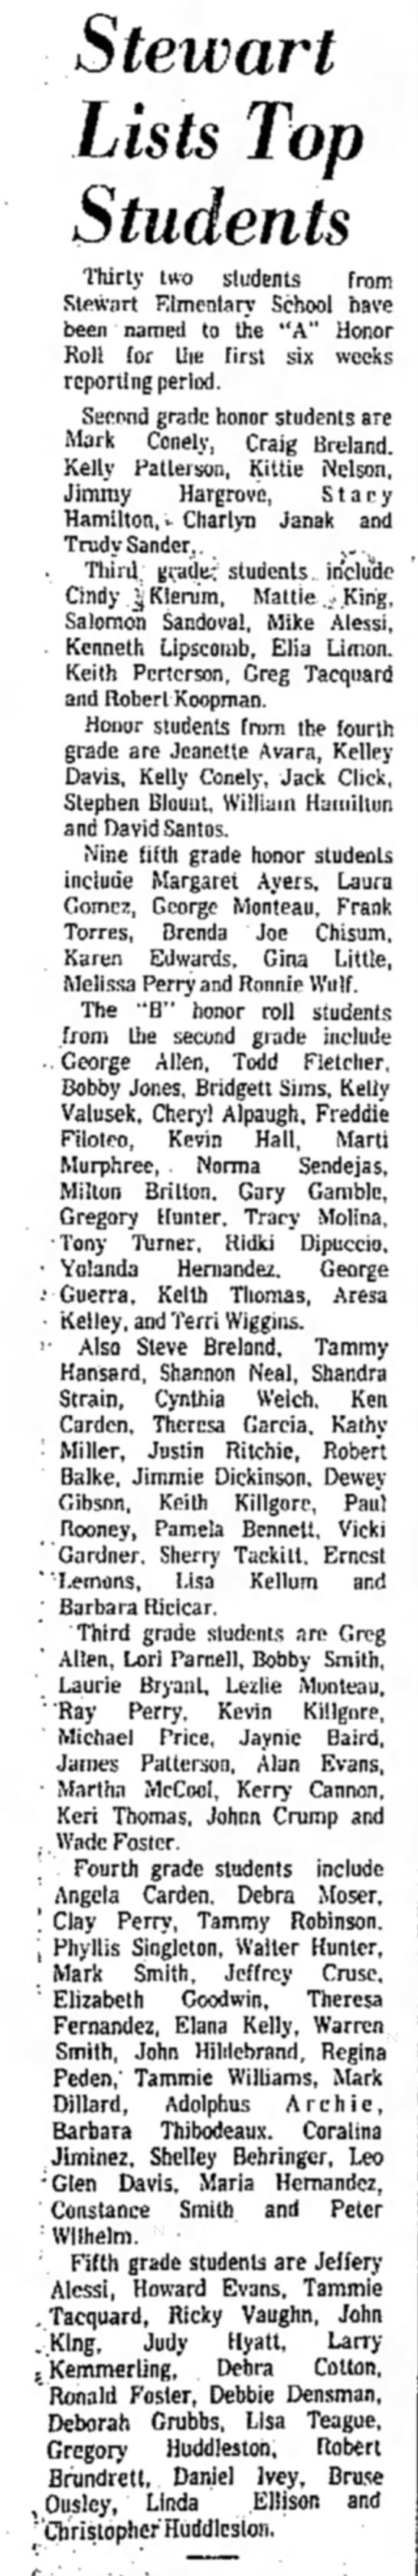 Honor Roll - 1970